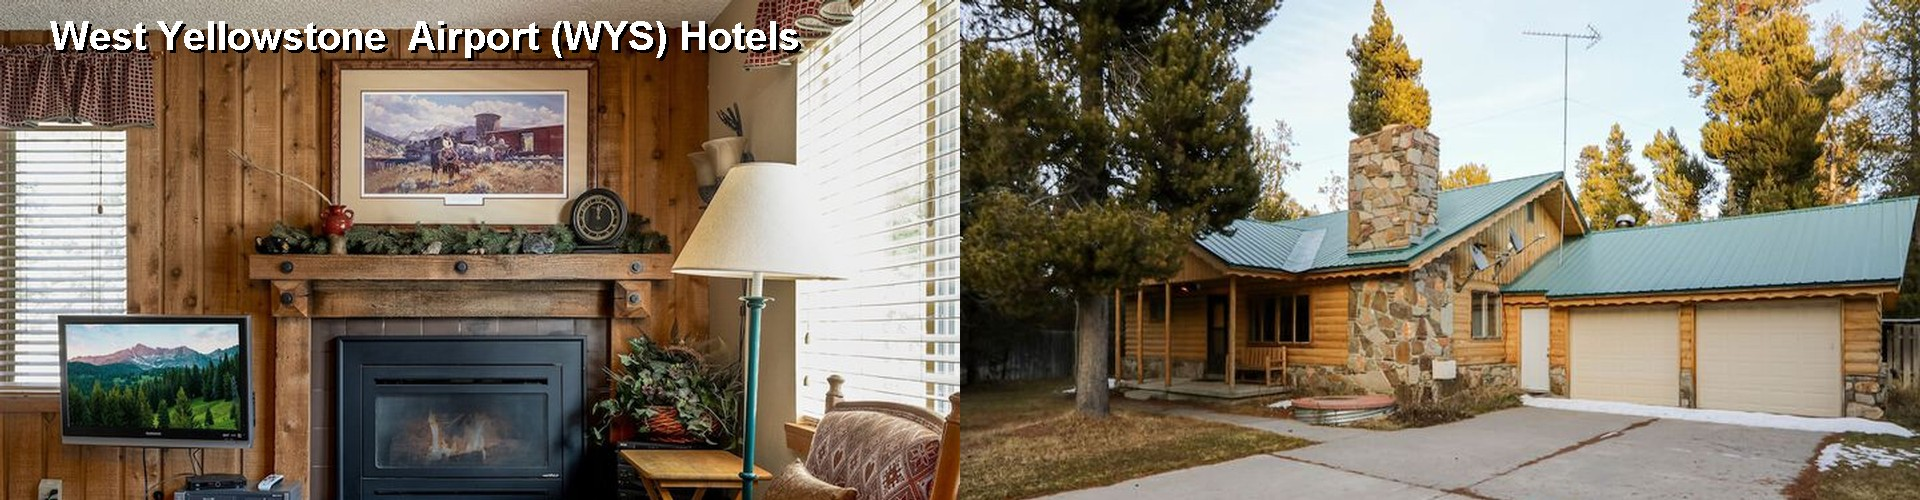 5 Best Hotels near West Yellowstone Airport (WYS)